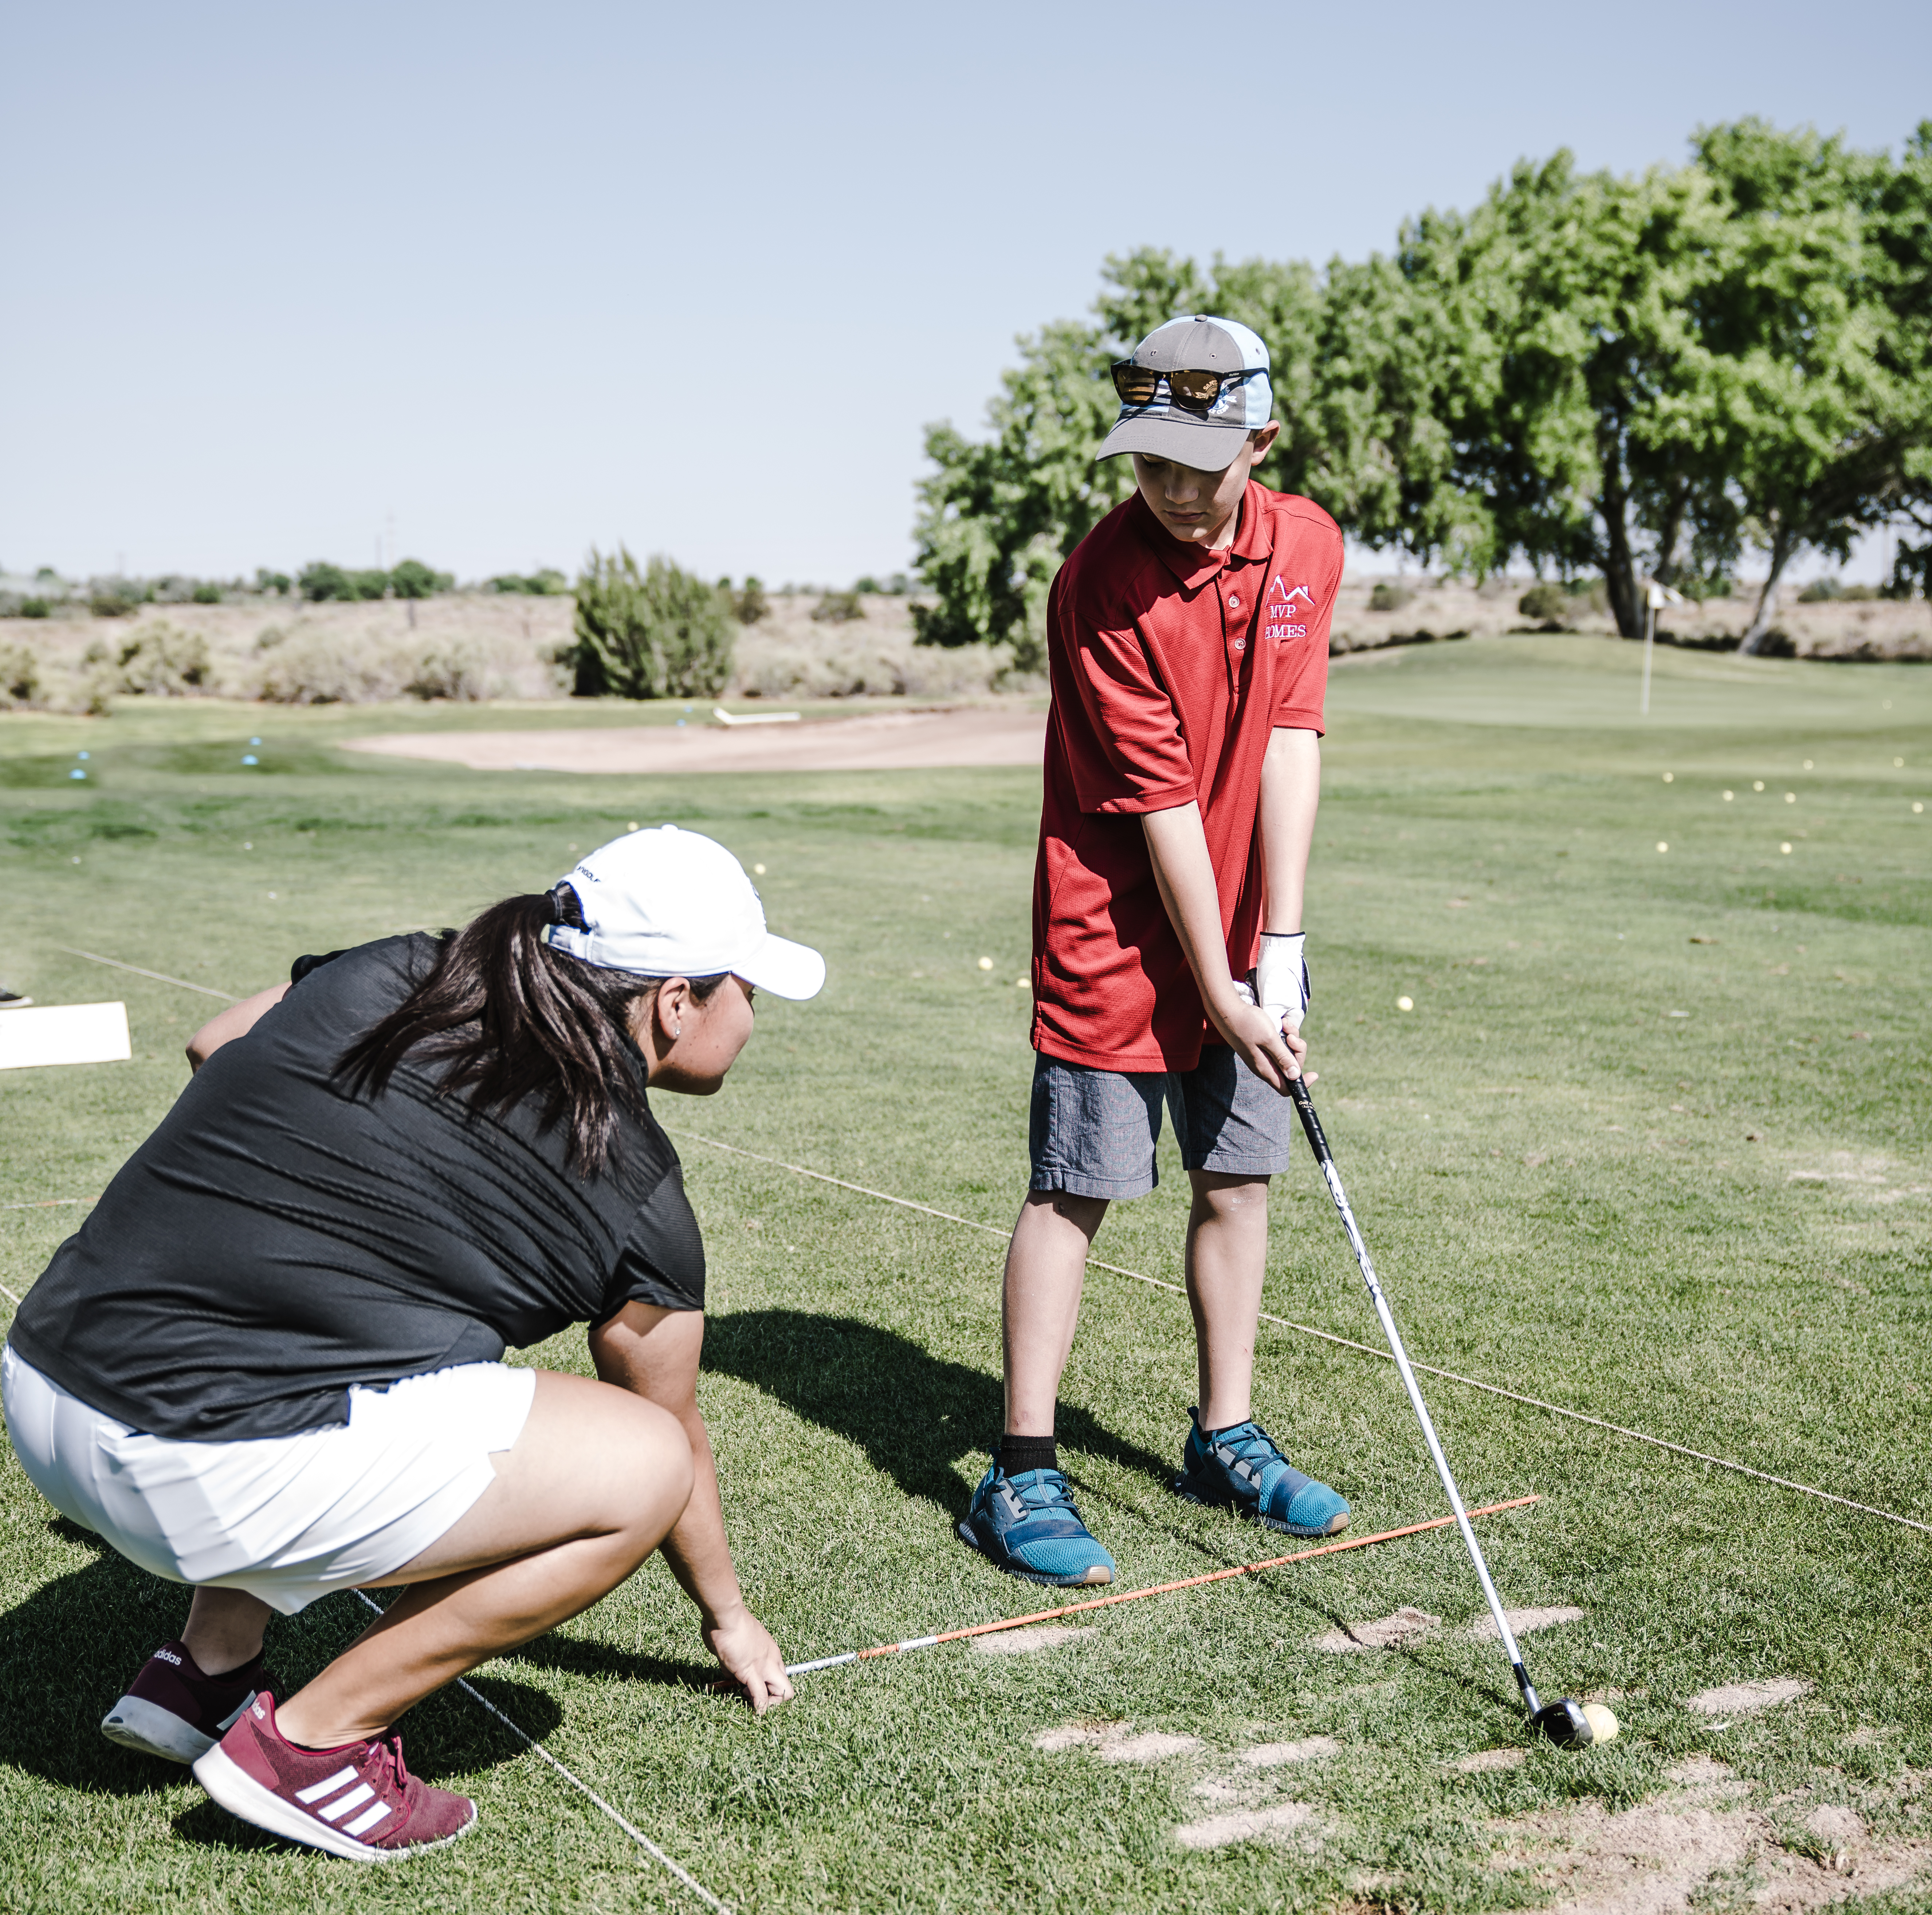 Boy Holding Golf Club in Front of Crouching Woman